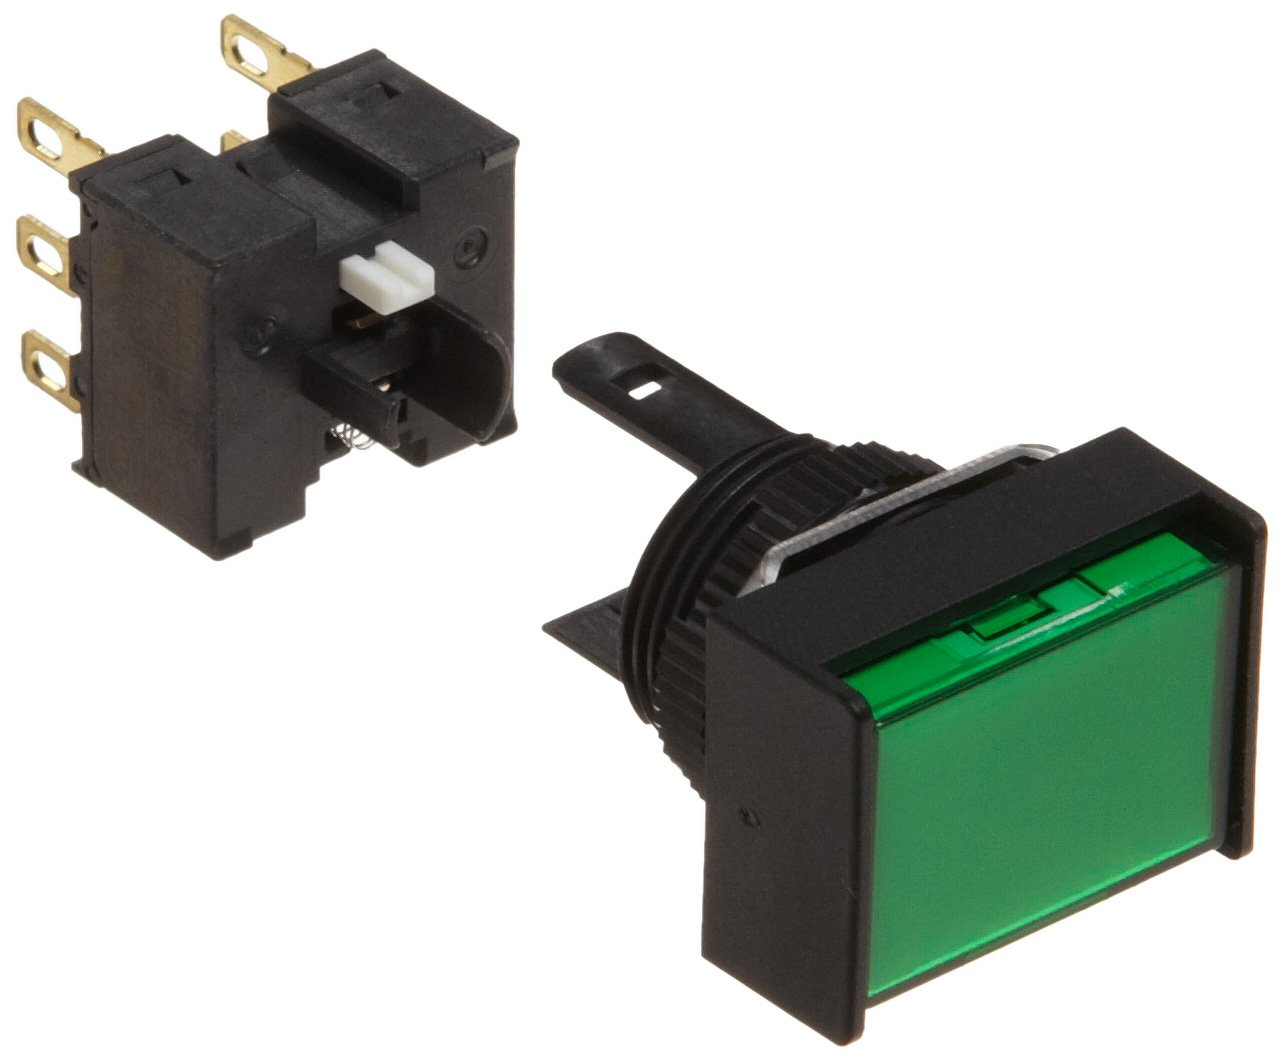 Omron A165-JGM-2 Two Way Guard Type Pushbutton and Switch, Solder Terminal, IP65 Oil Resistant, 16mm Mounting Aperture, Non-Lighted, Momentary Operation, Rectangular, Green, Double Pole Double Throw Contacts